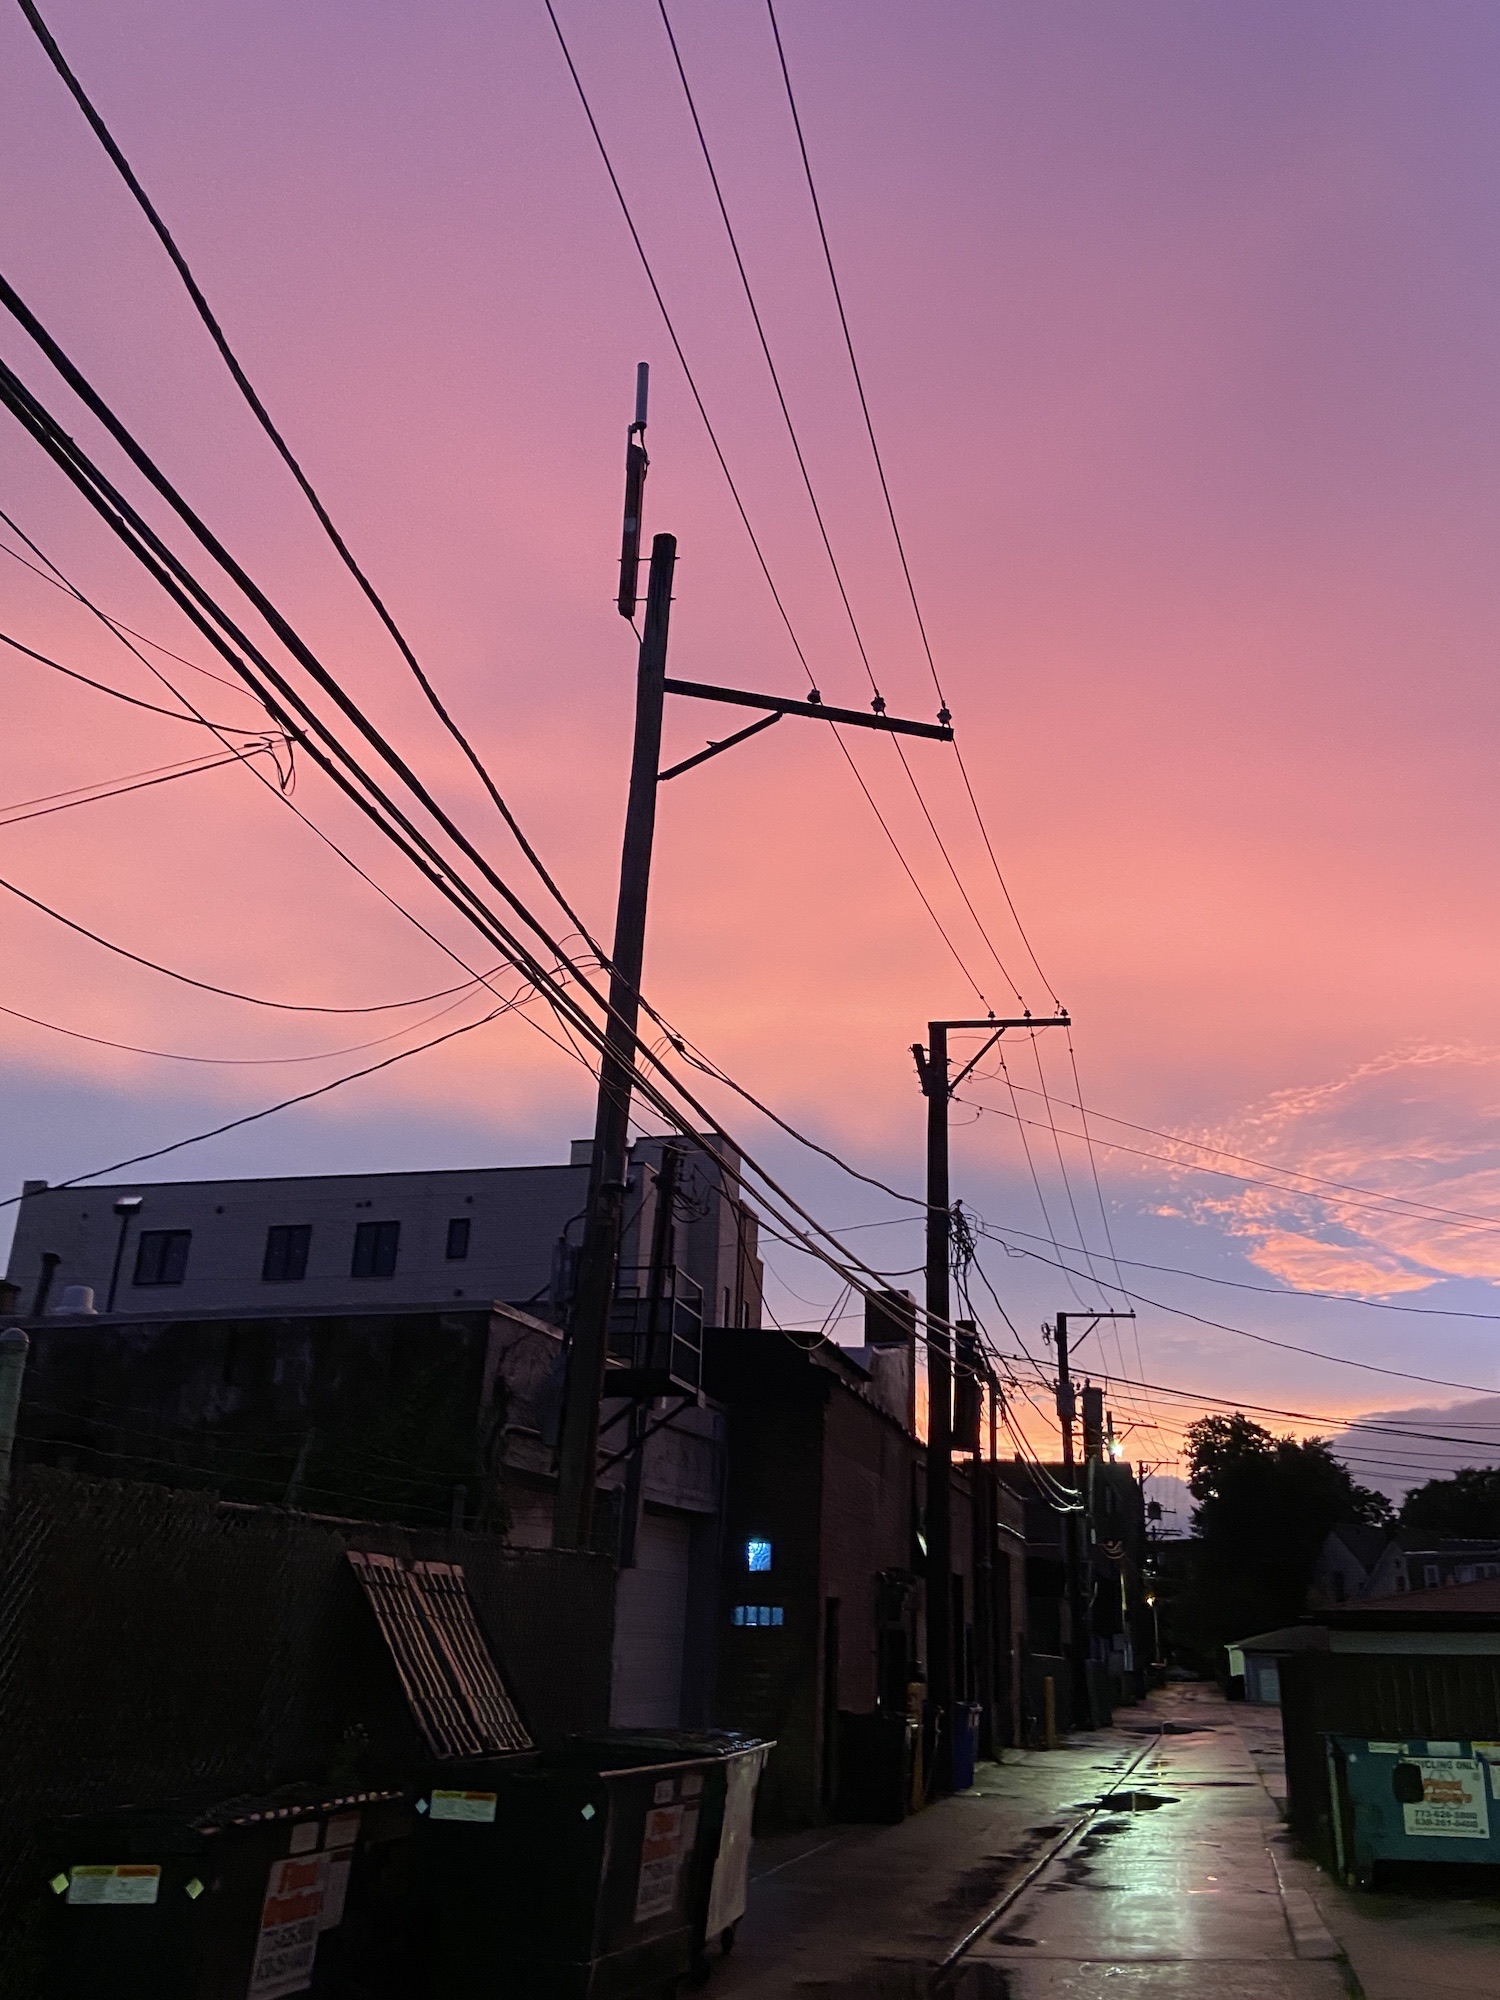 A pink sunset seen in an alley in Chicago in June 2020.